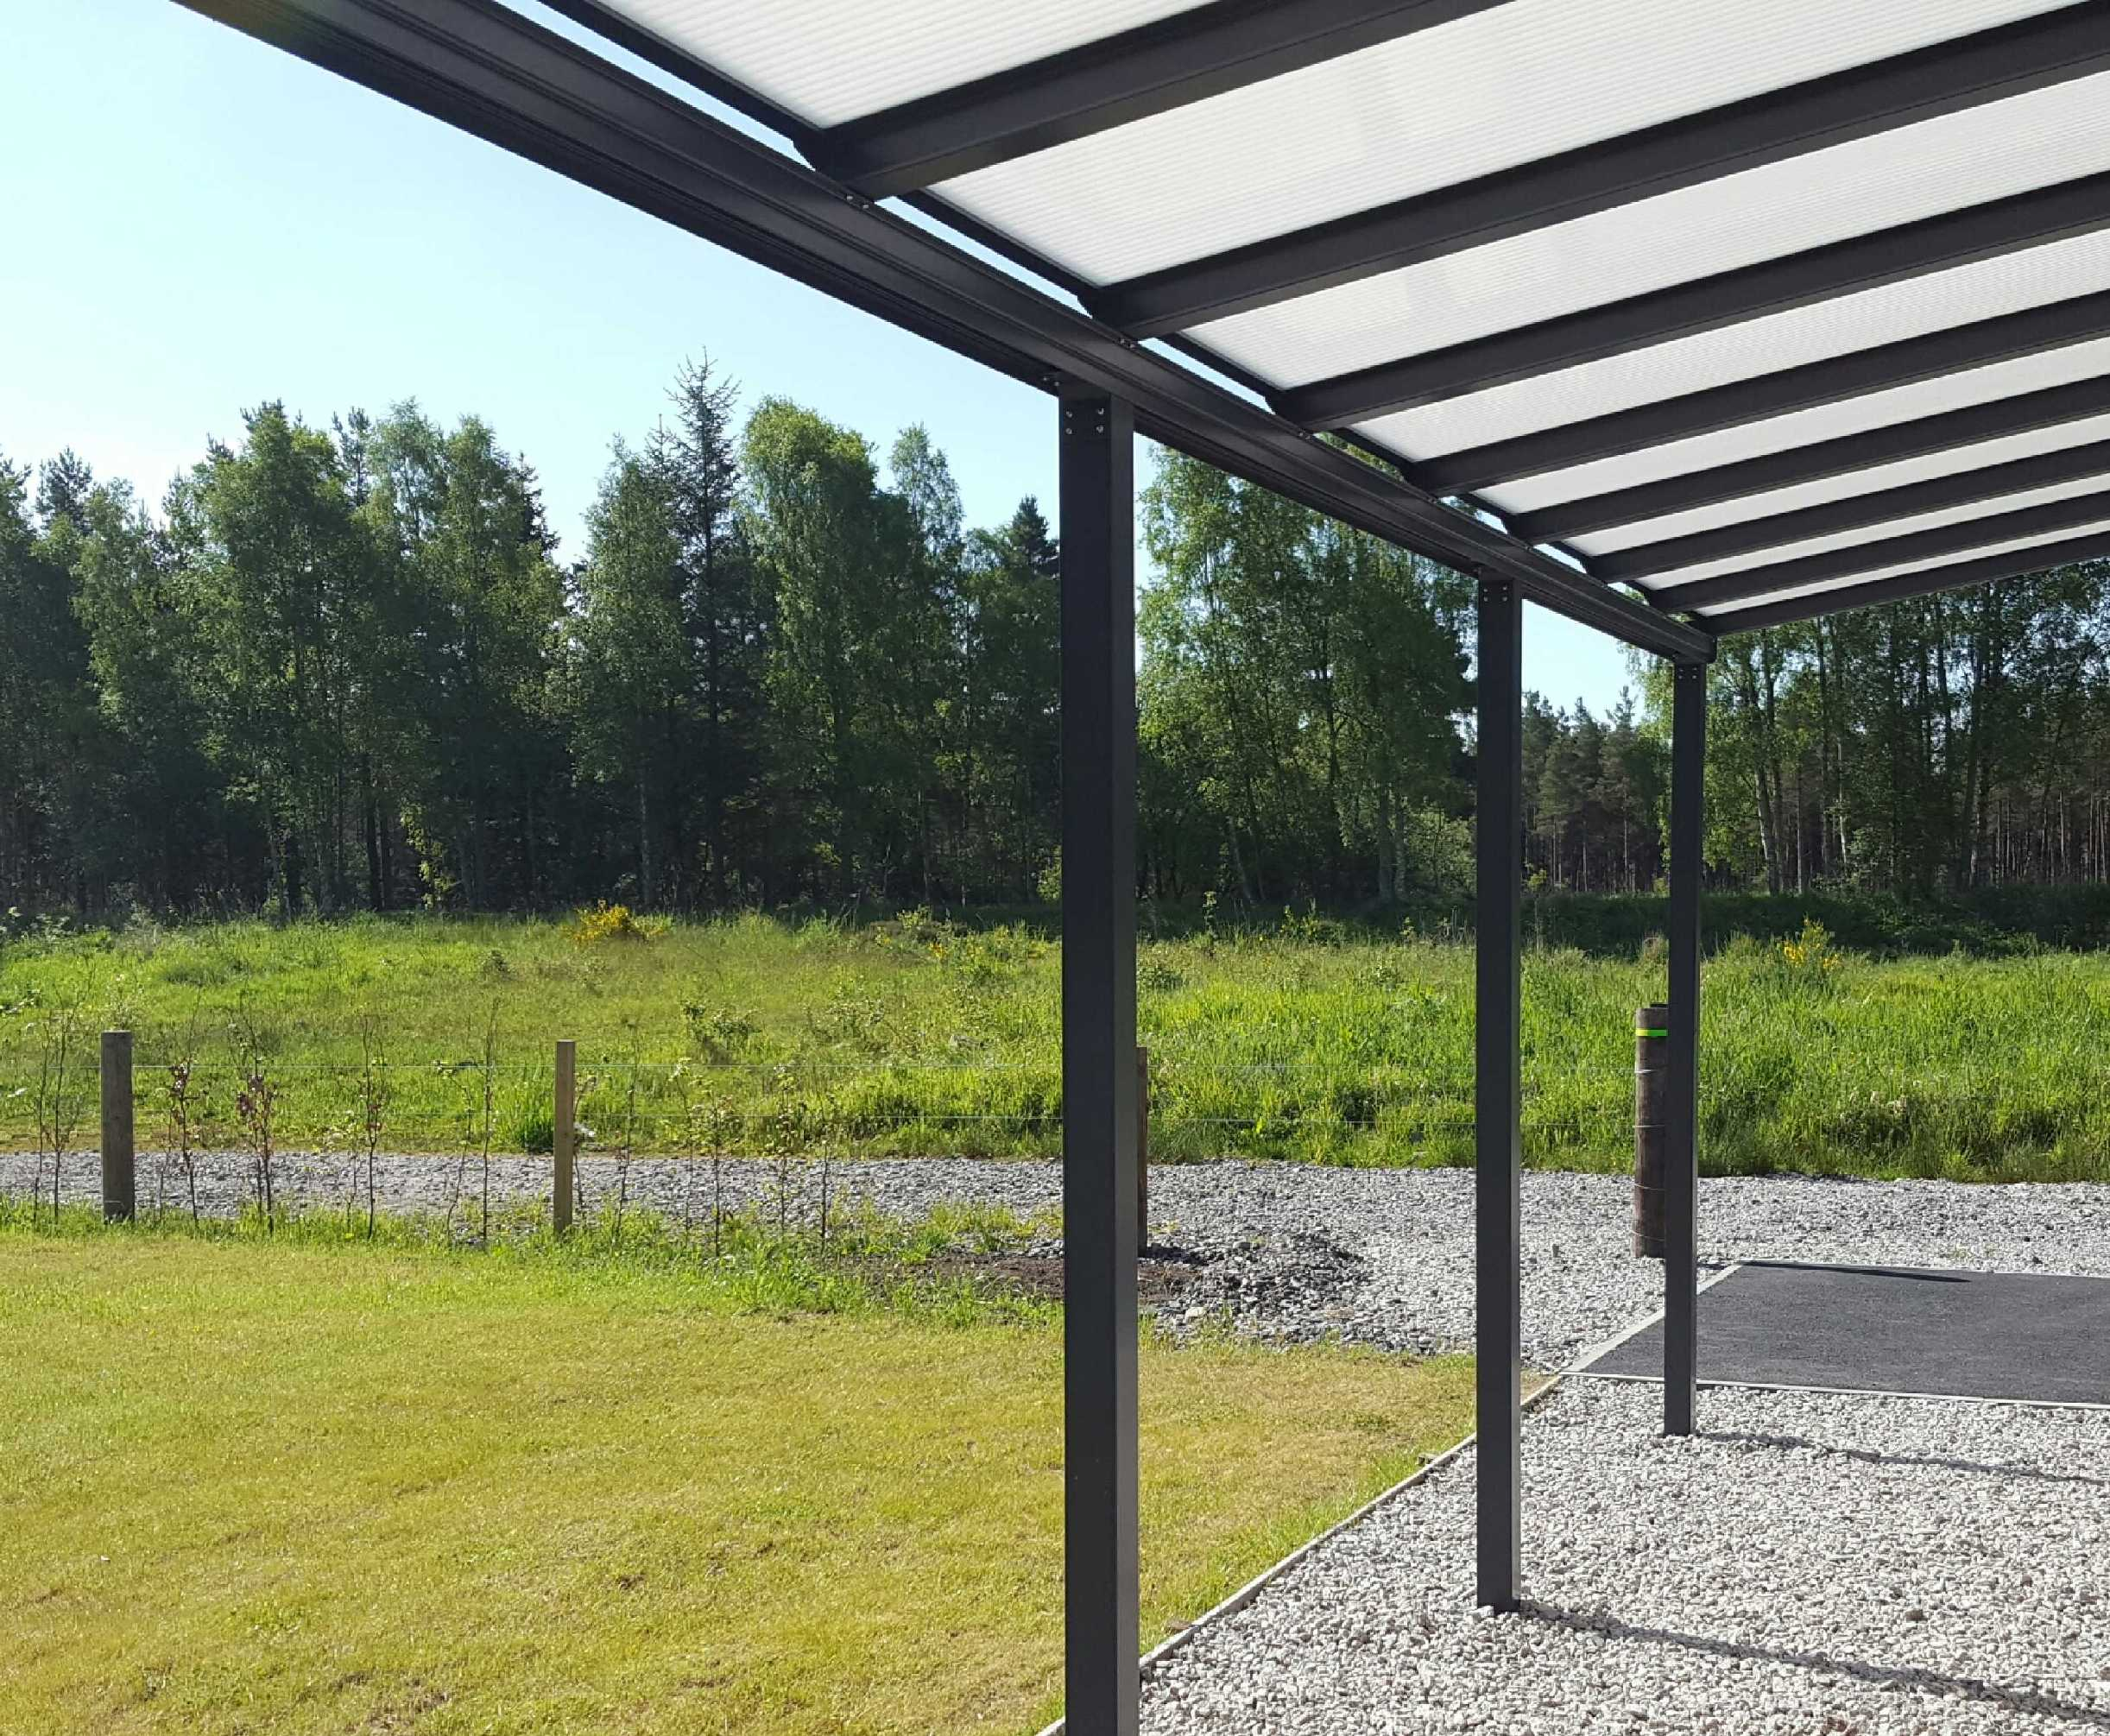 Omega Smart Lean-To Canopy, Anthracite Grey, 6mm Glass Clear Plate Polycarbonate Glazing - 9.8m (W) x 1.5m (P), (5) Supporting Posts